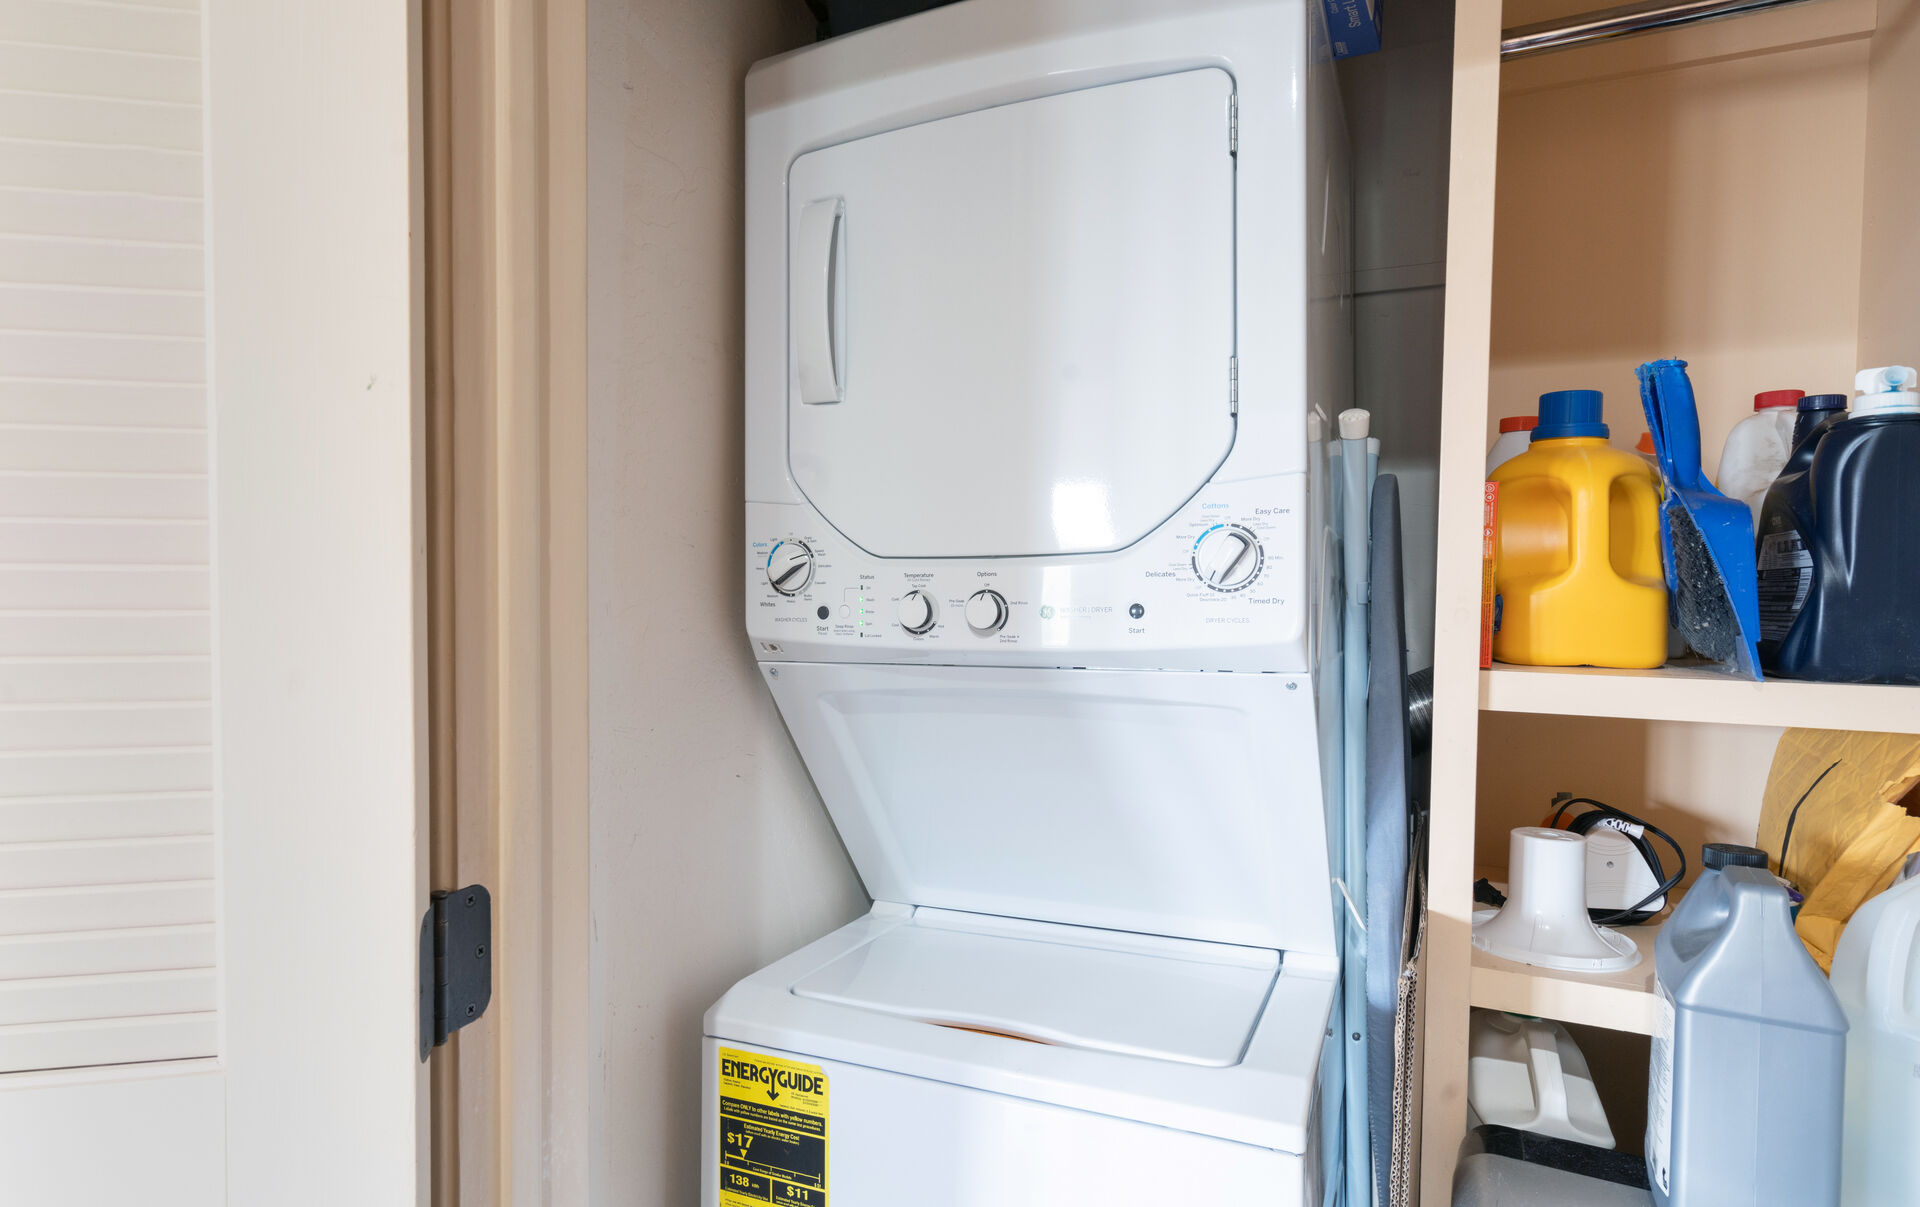 Stacked washer and dryer in cabinet